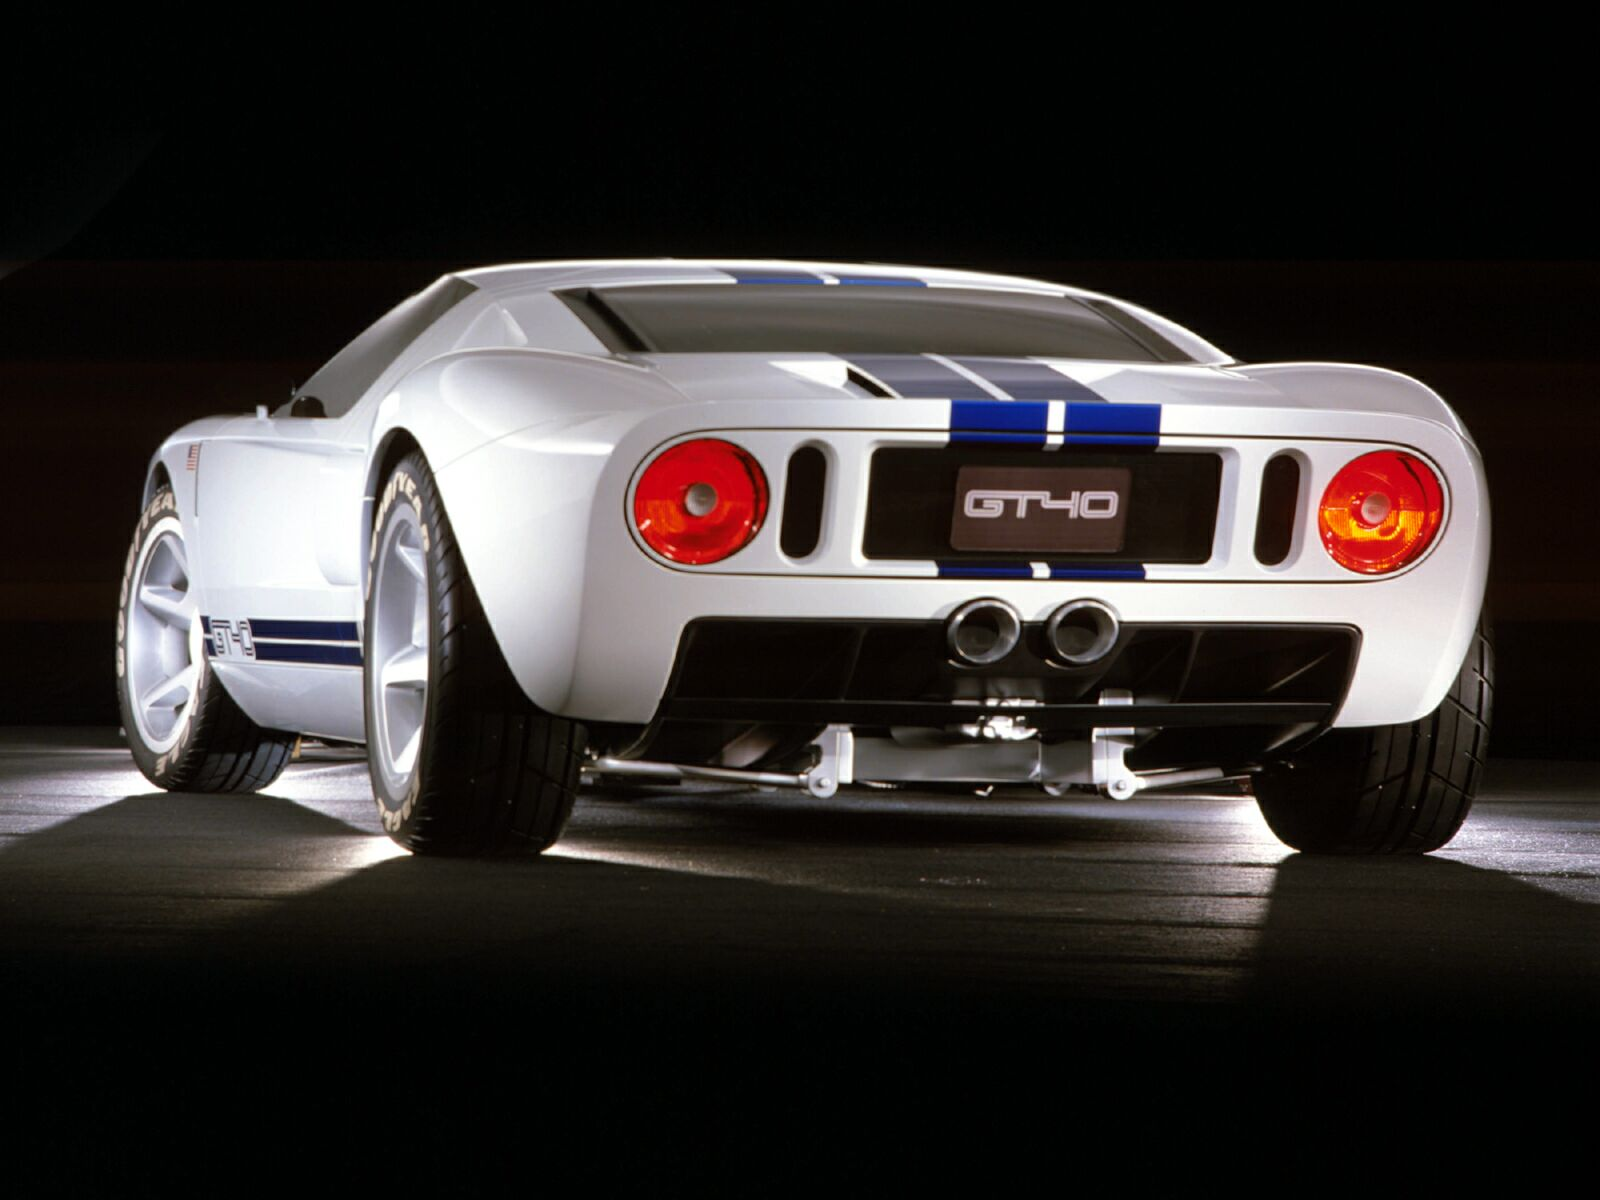 http://www.wallpaperslot.com/data/media/403/Ford%20GT40%2043.jpg